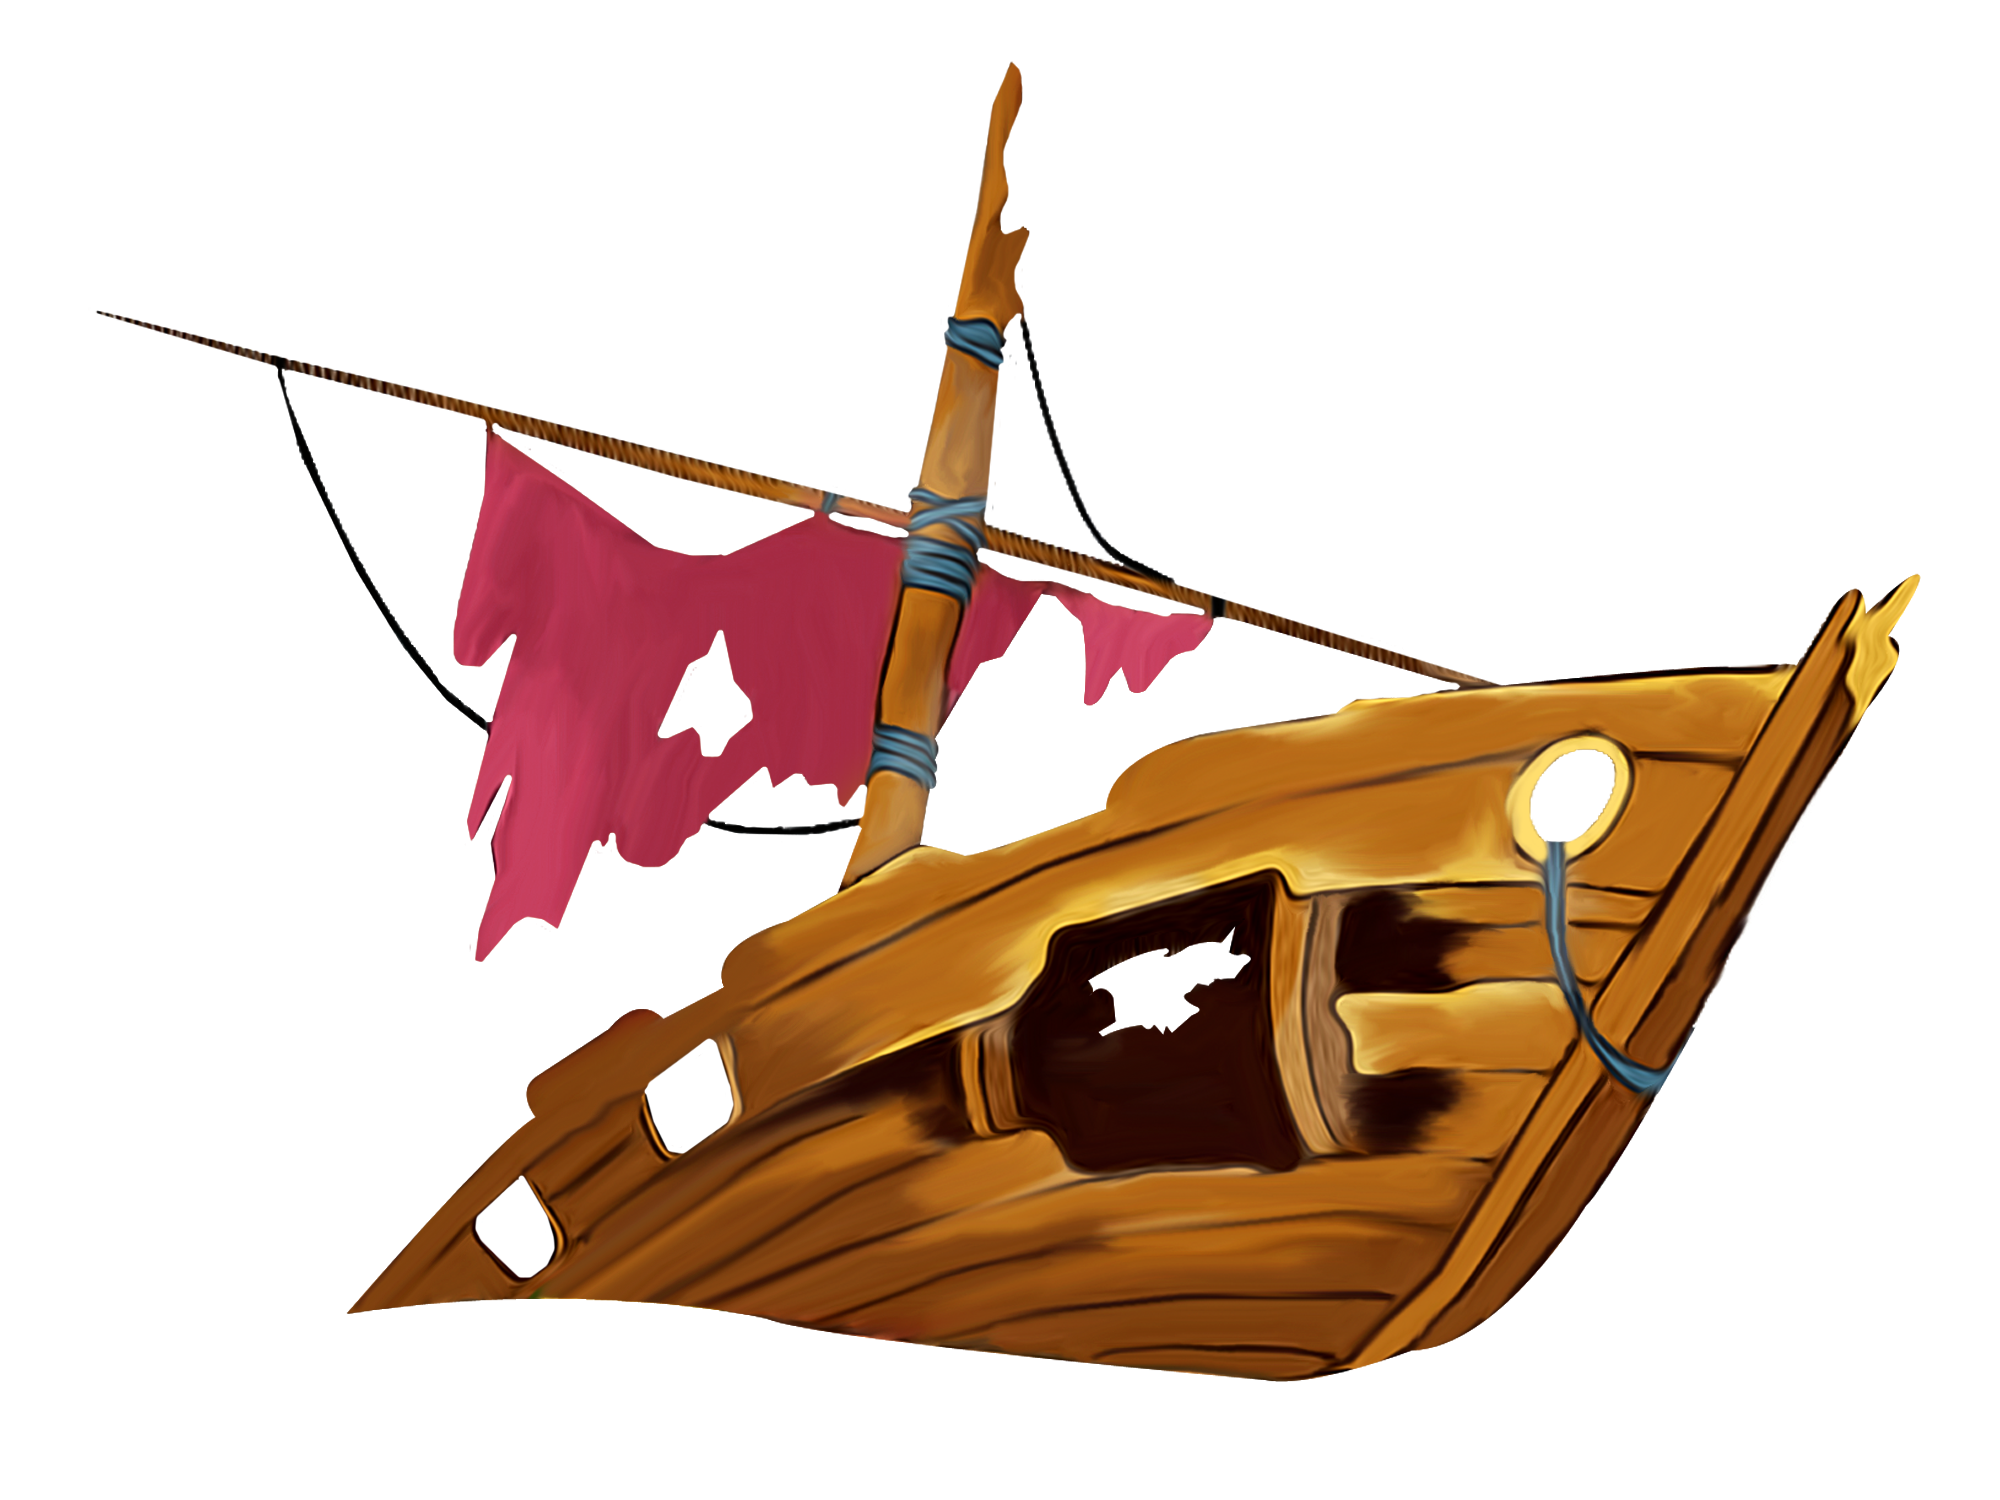 png free library Shipwreck clip art lego. Boat clipart shipwrecked